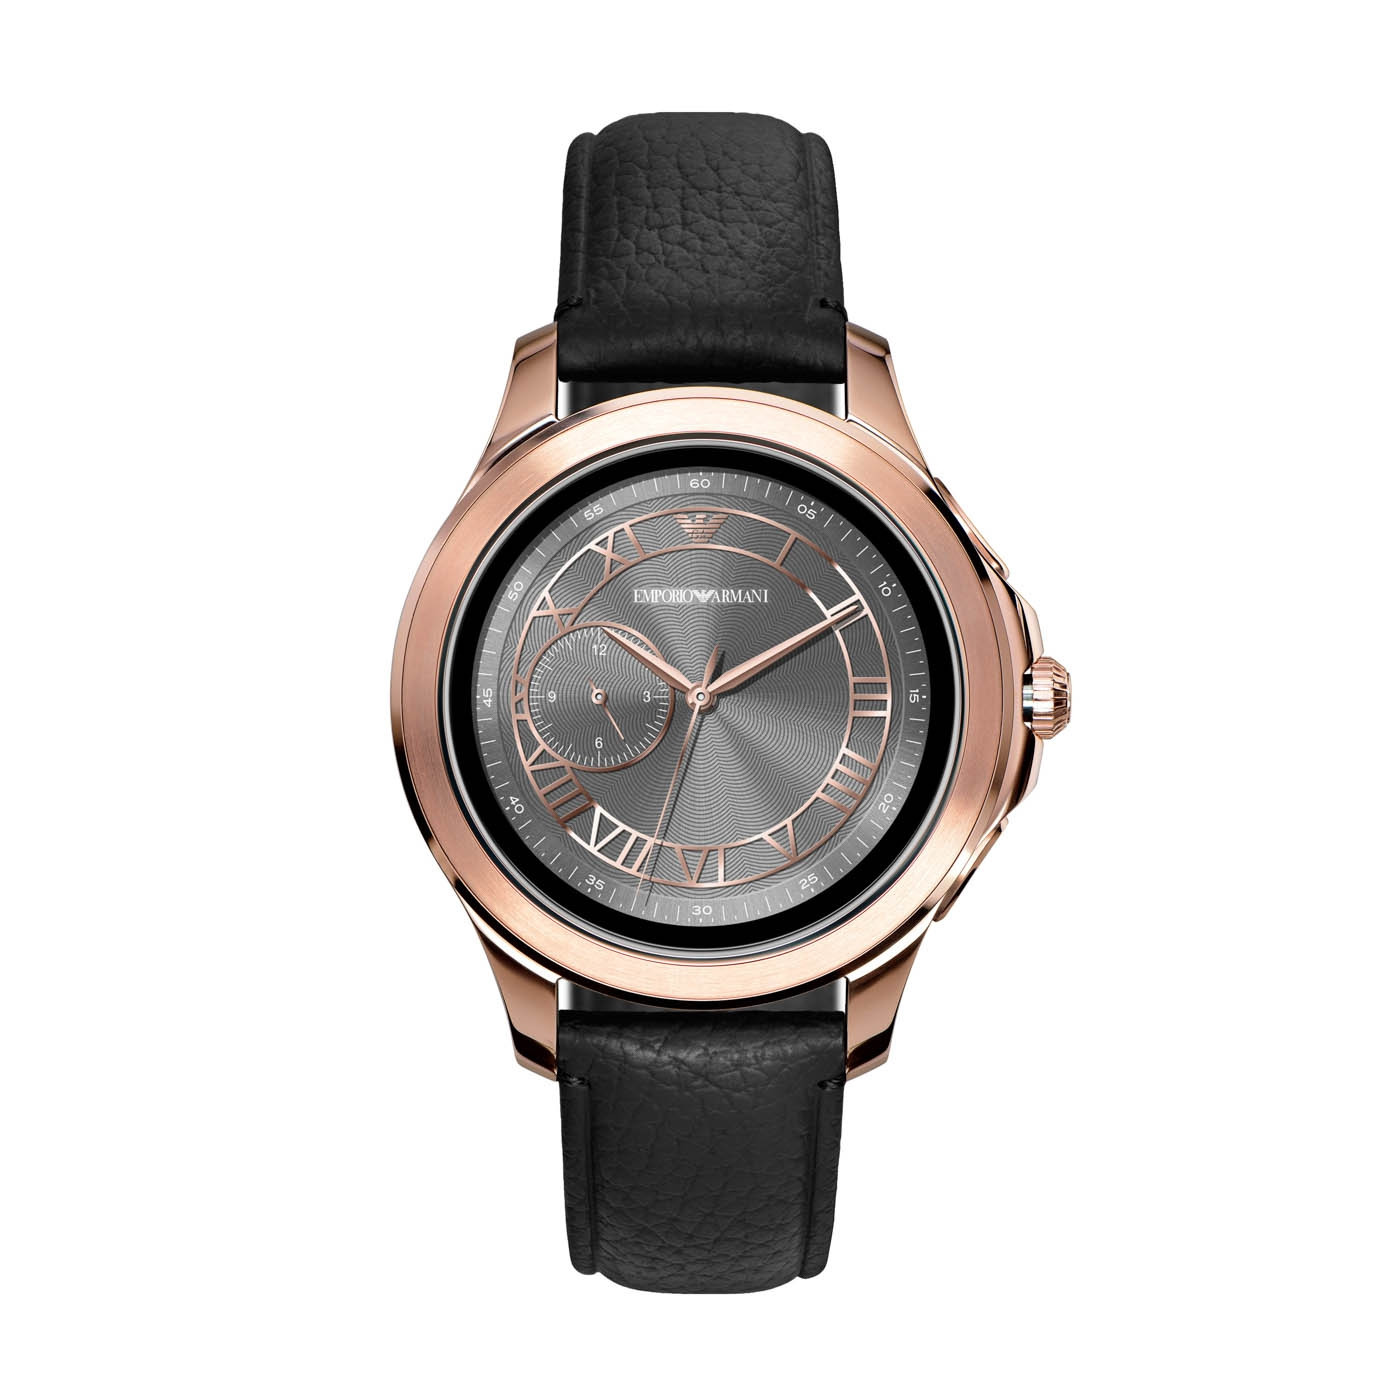 Emporio Armani Connected Alberto Gen 4 Display Smartwatch ART5012